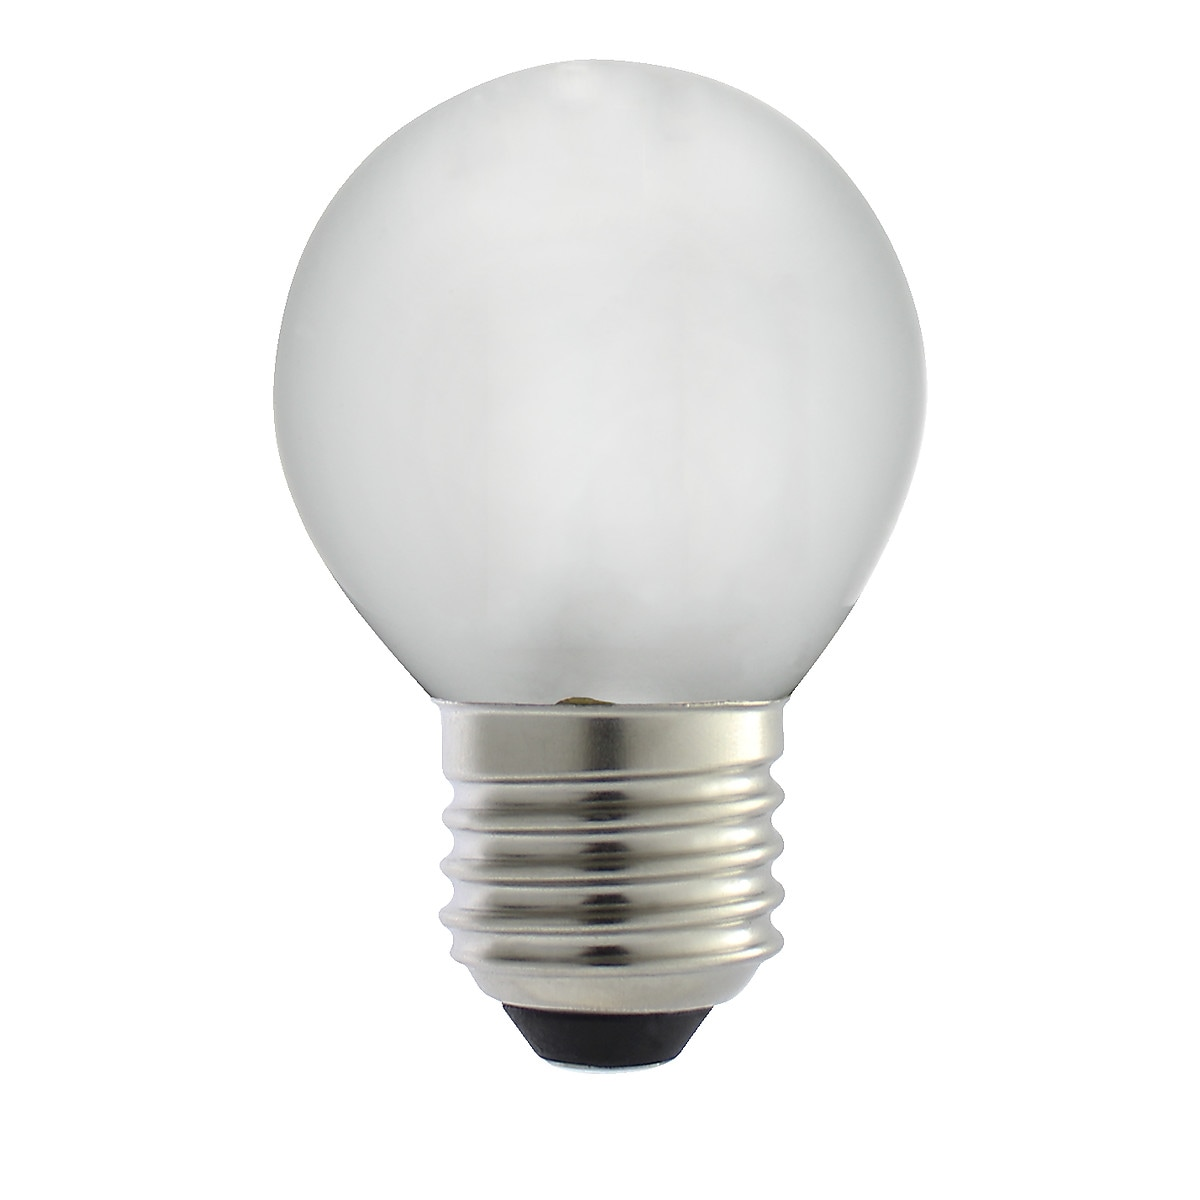 Clas Ohlson E27 Dimmable LED Golf Ball Bulb